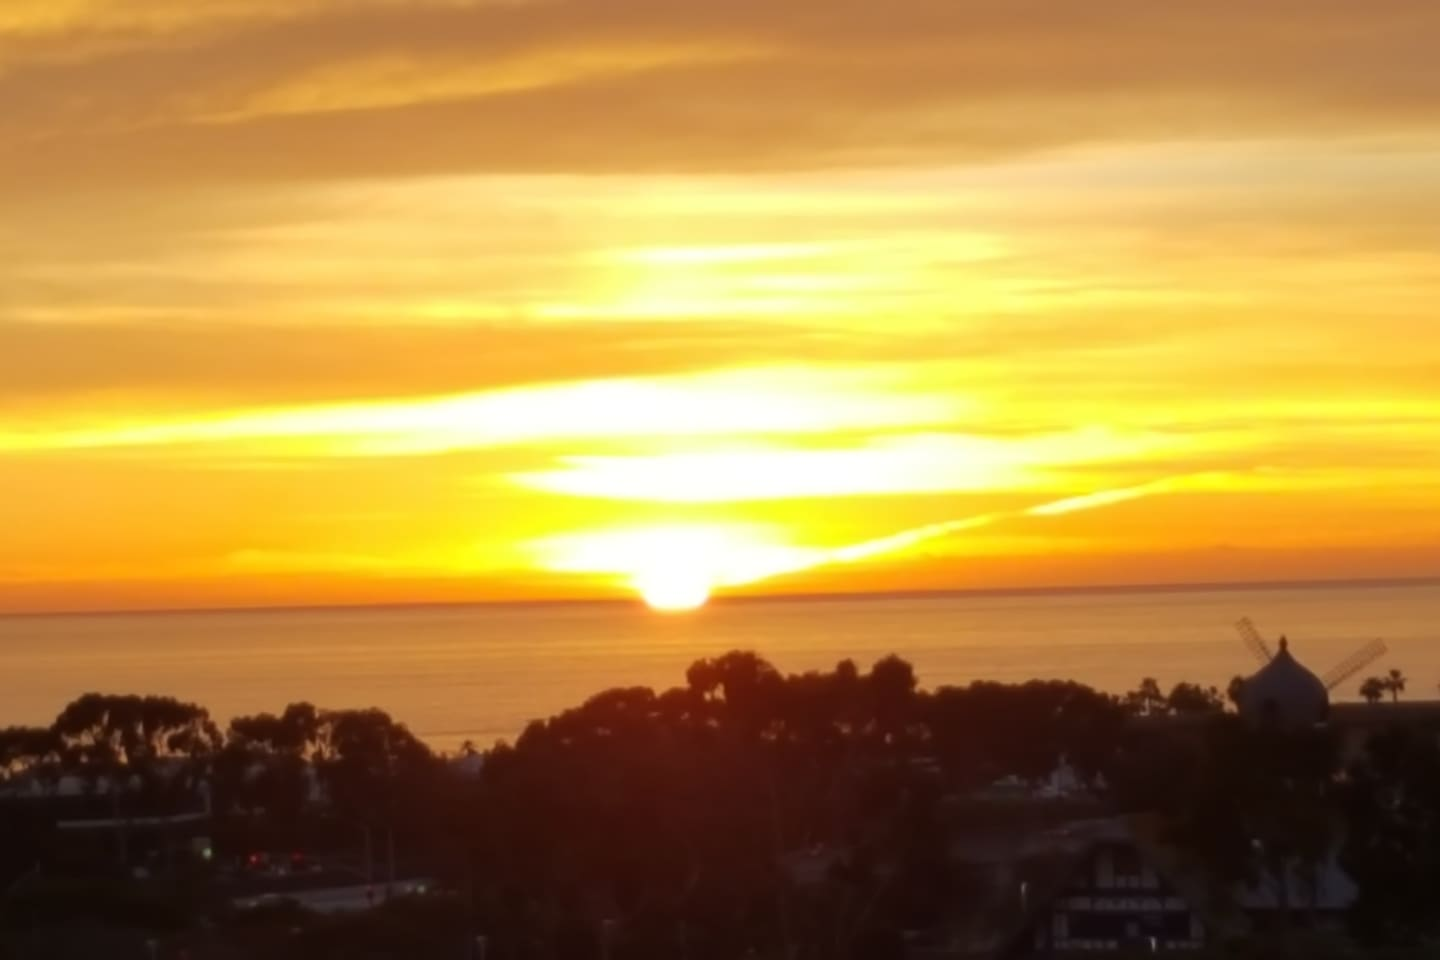 Enjoy fabulous sunsets after busy active day!  Have a glass of wine/beverage -- RELAX!